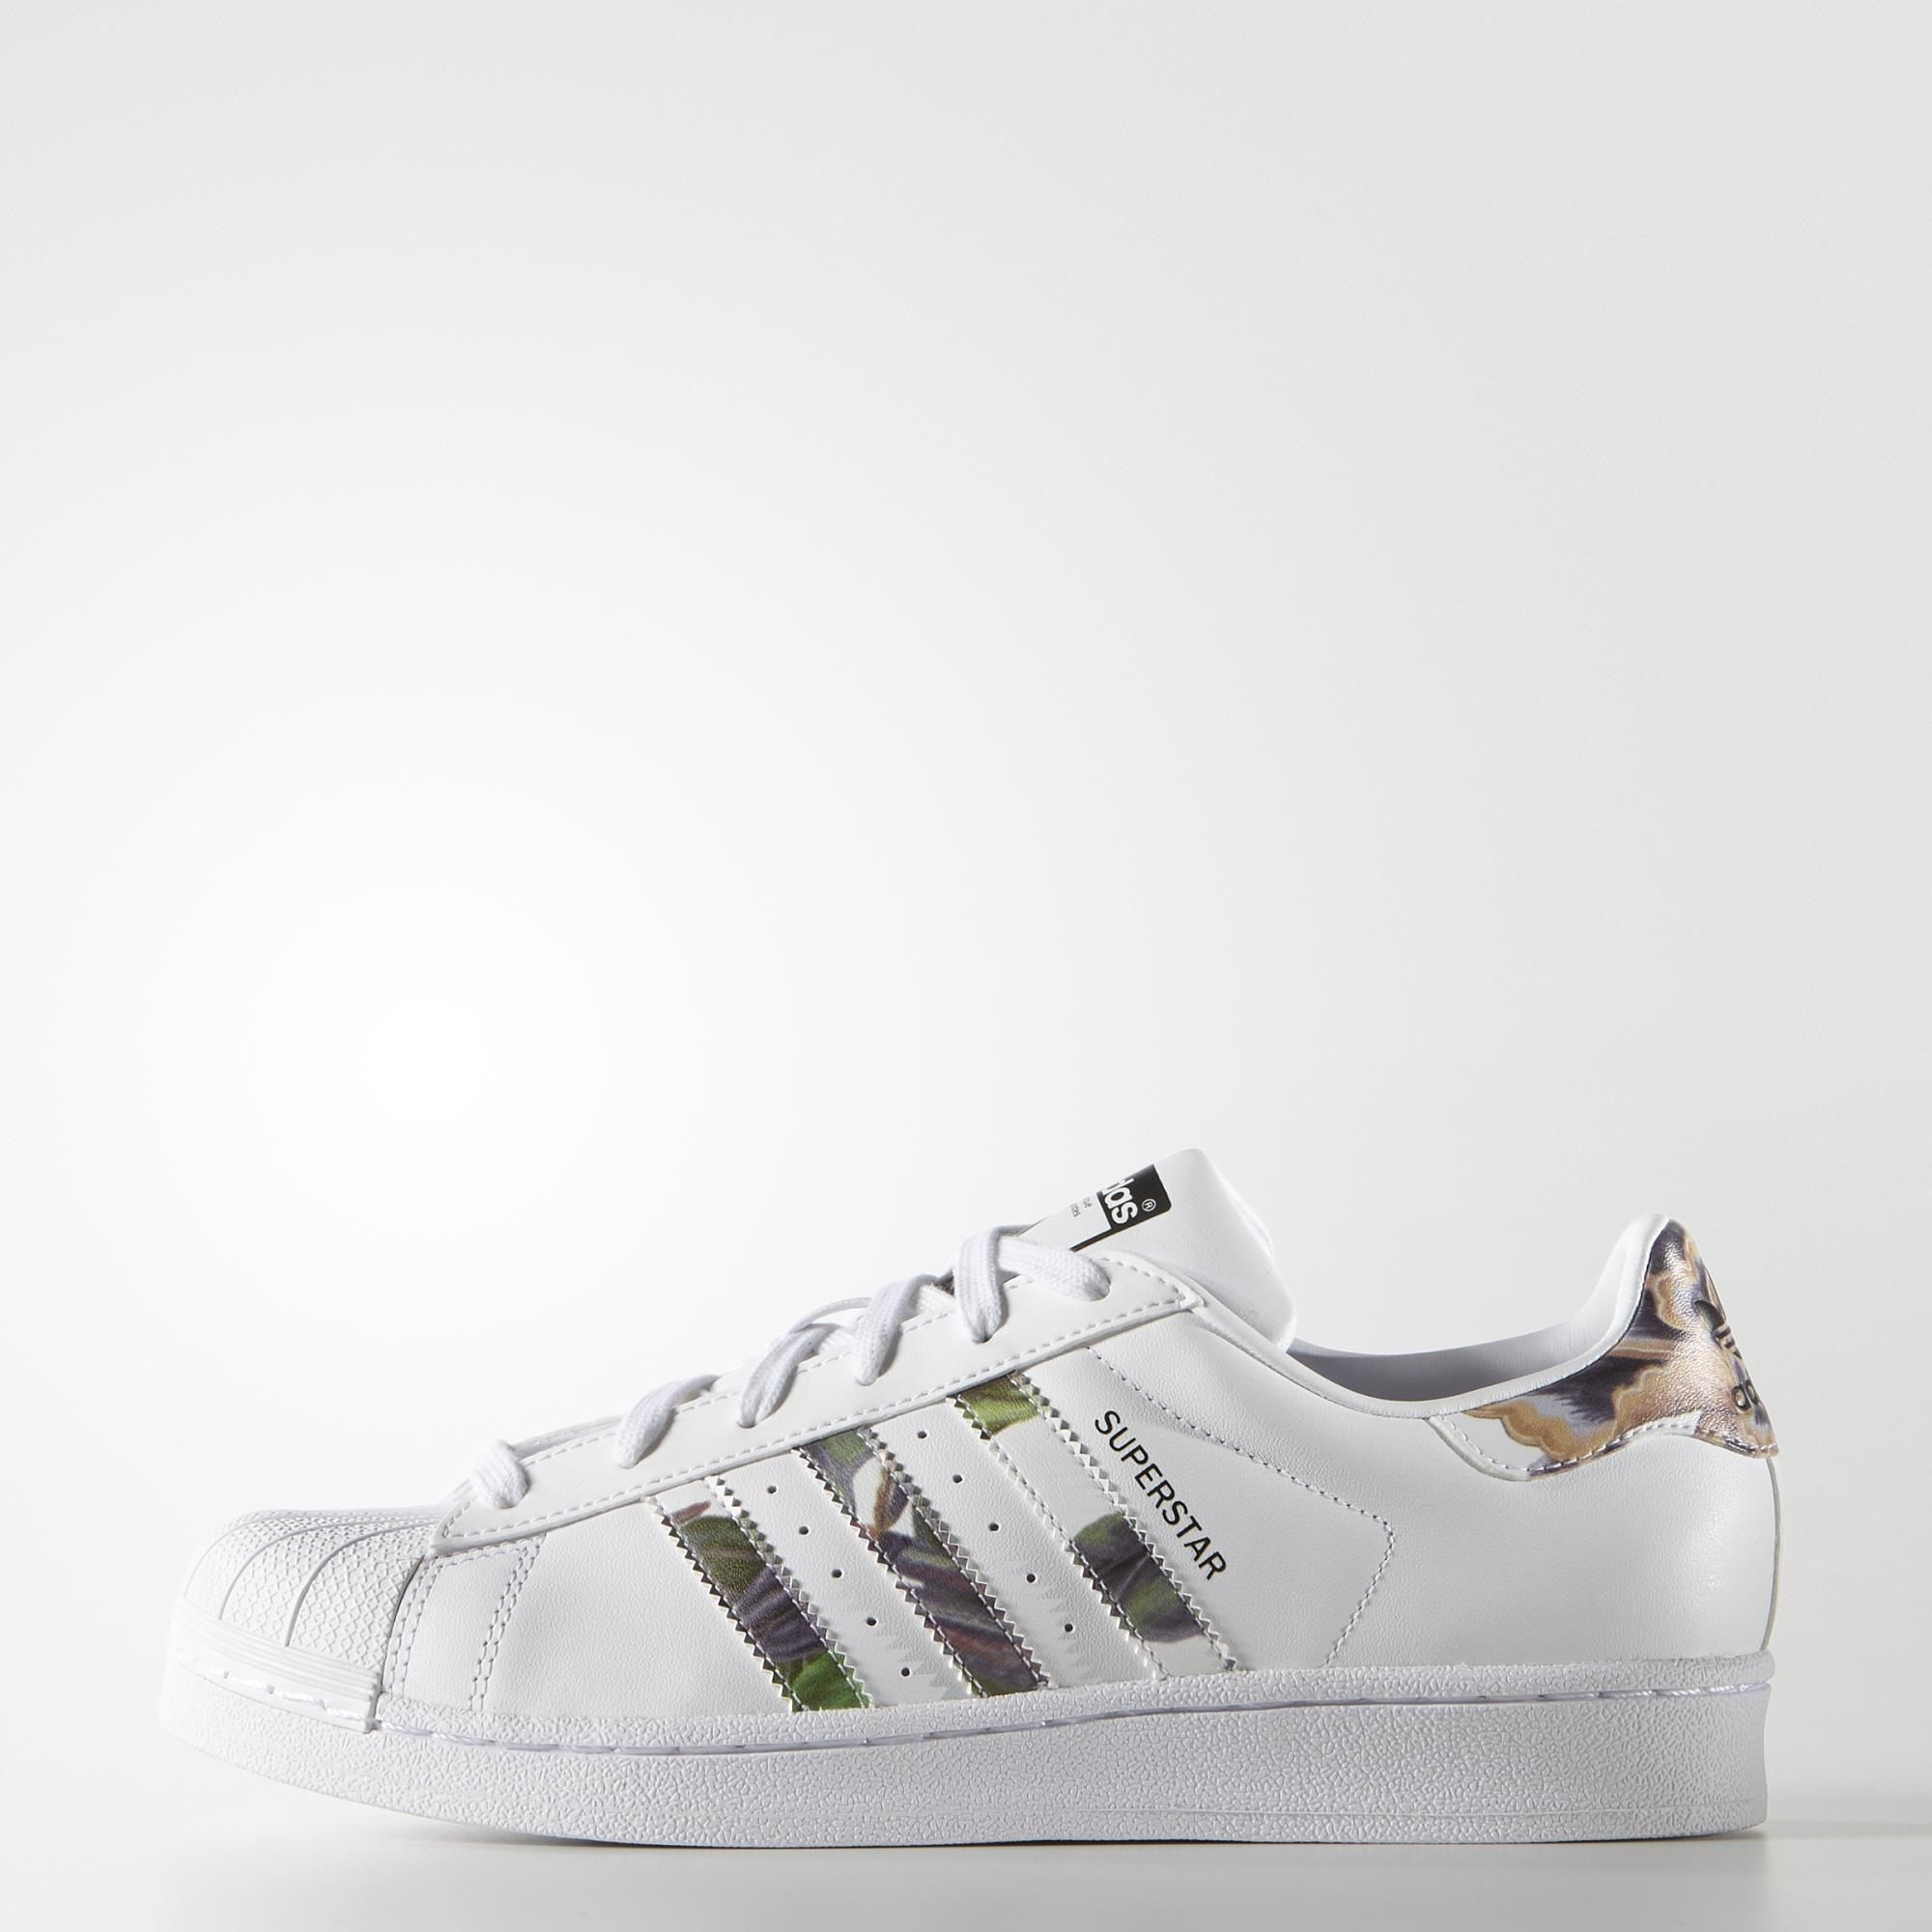 Adidas Superstars (printed)